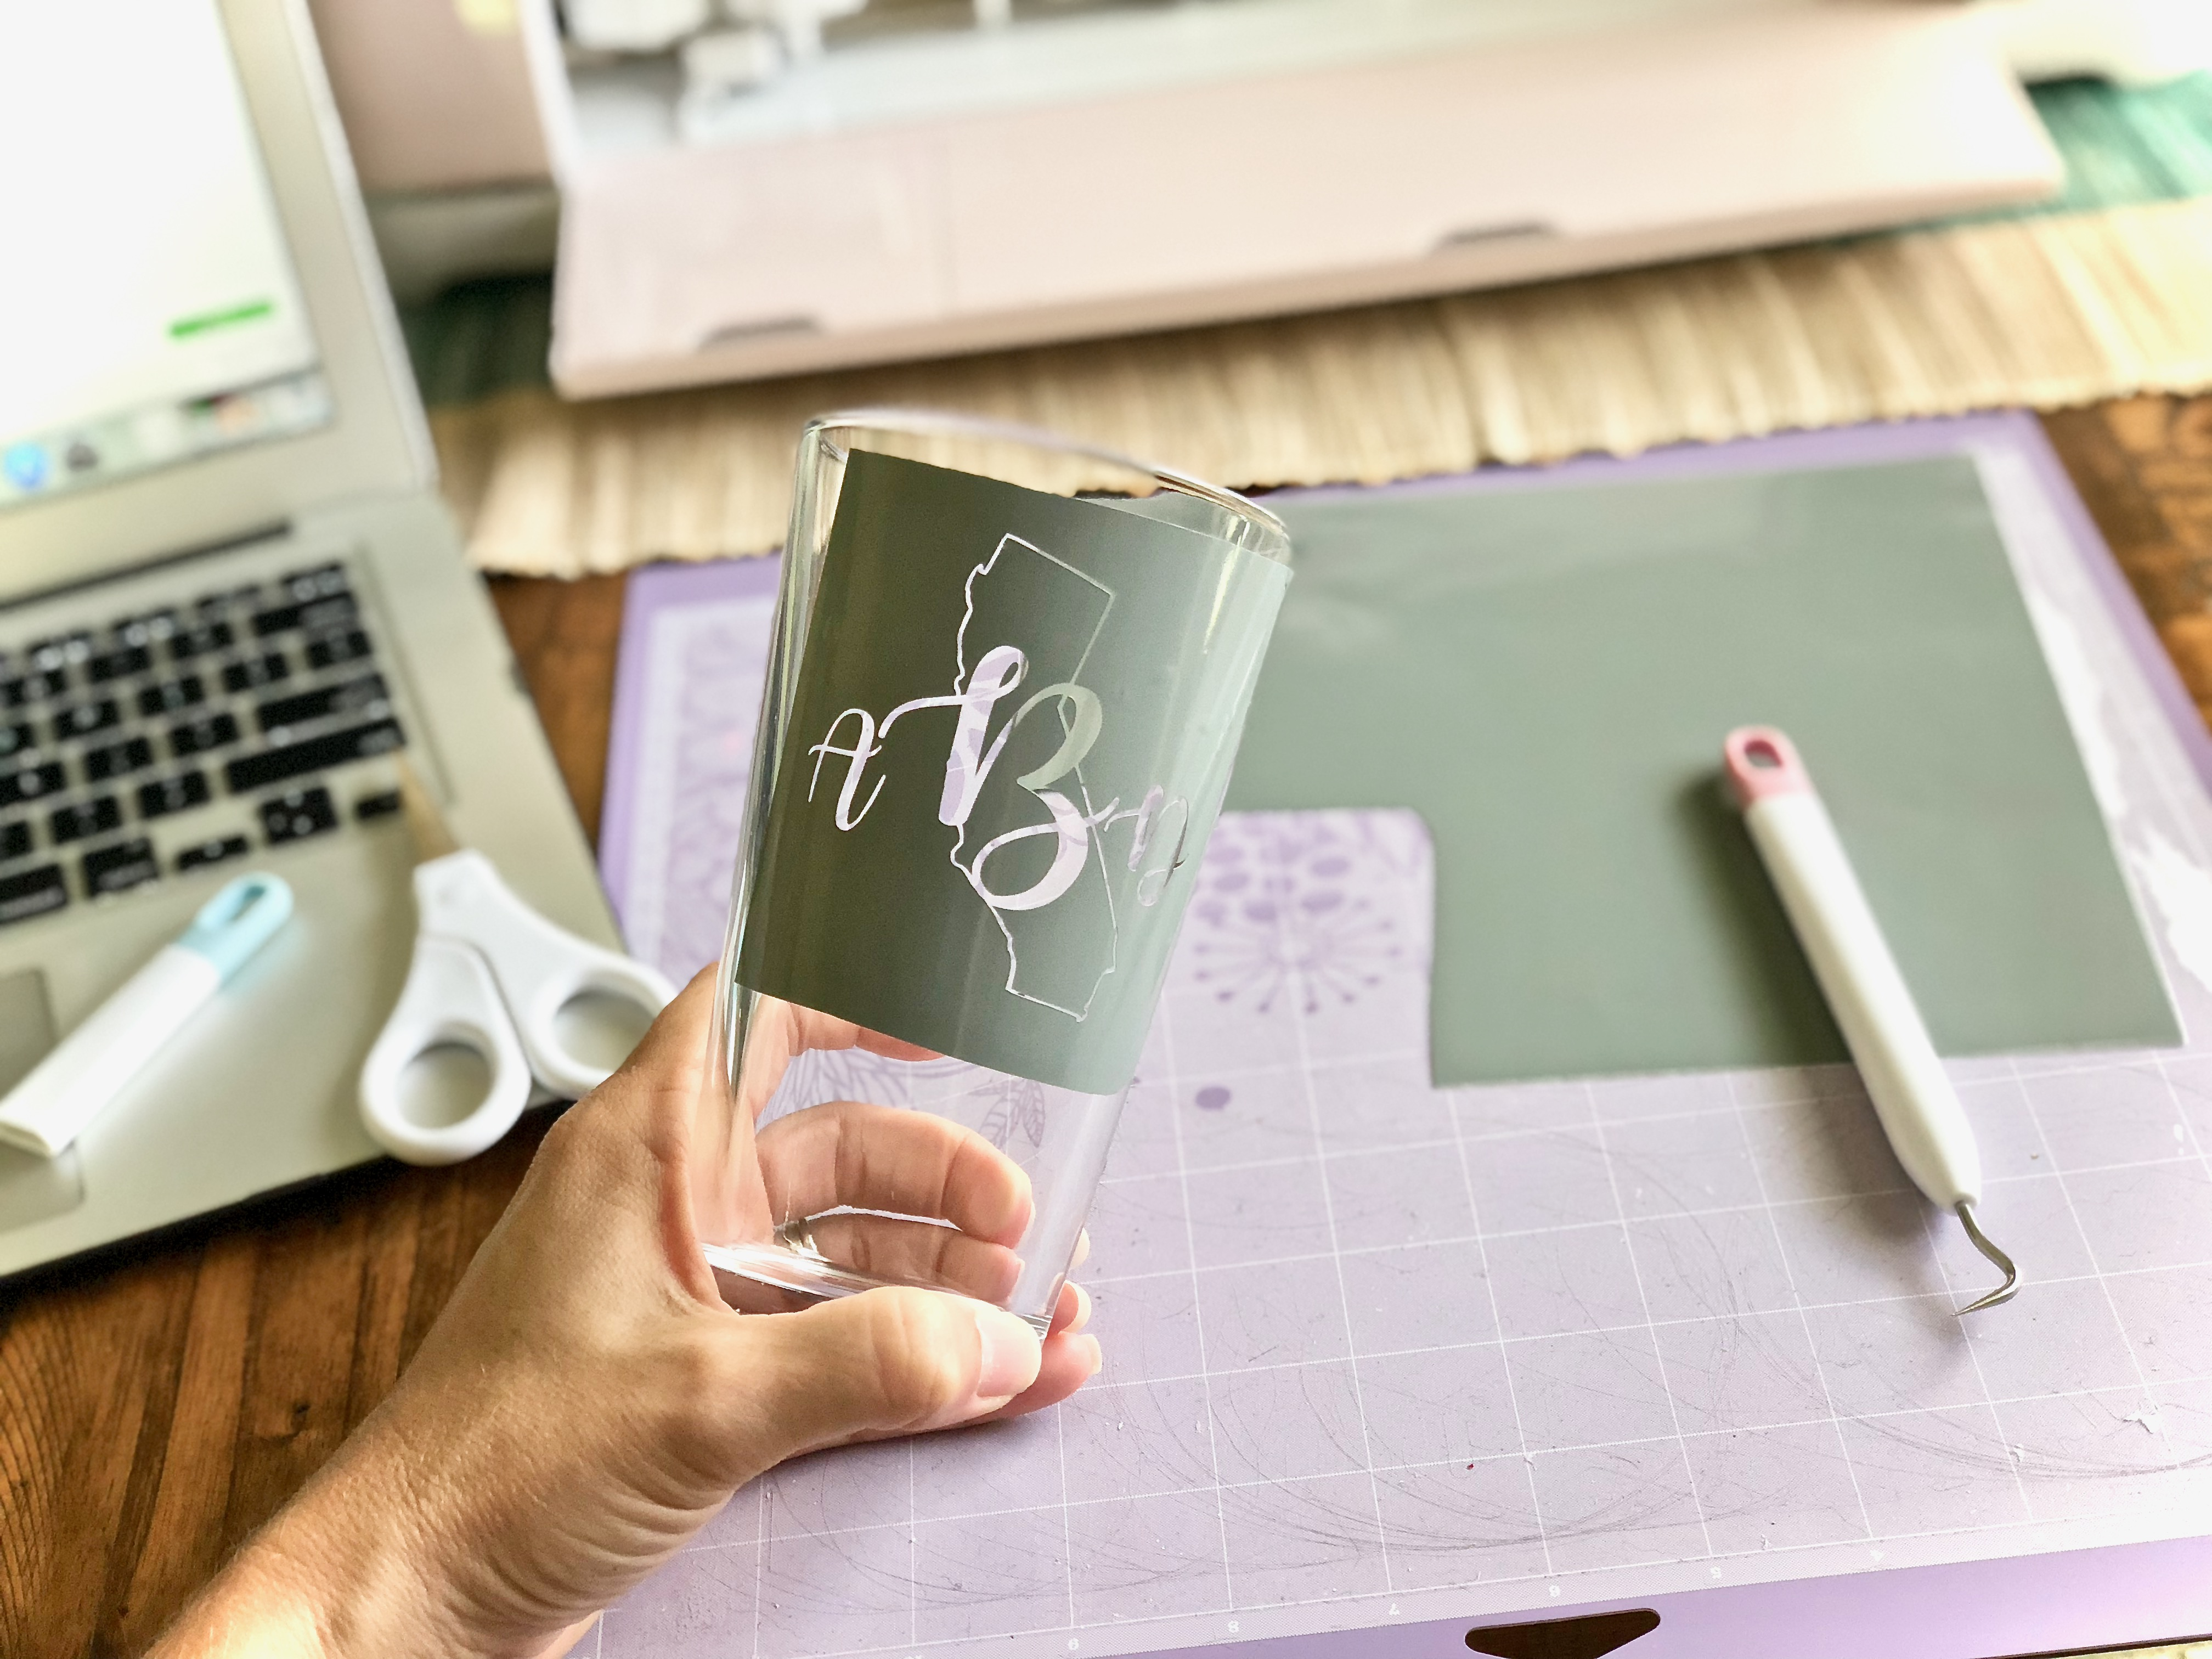 Cricut vinyl design used for glass etching - Glass Etching With Your Cricut Or Silhouette